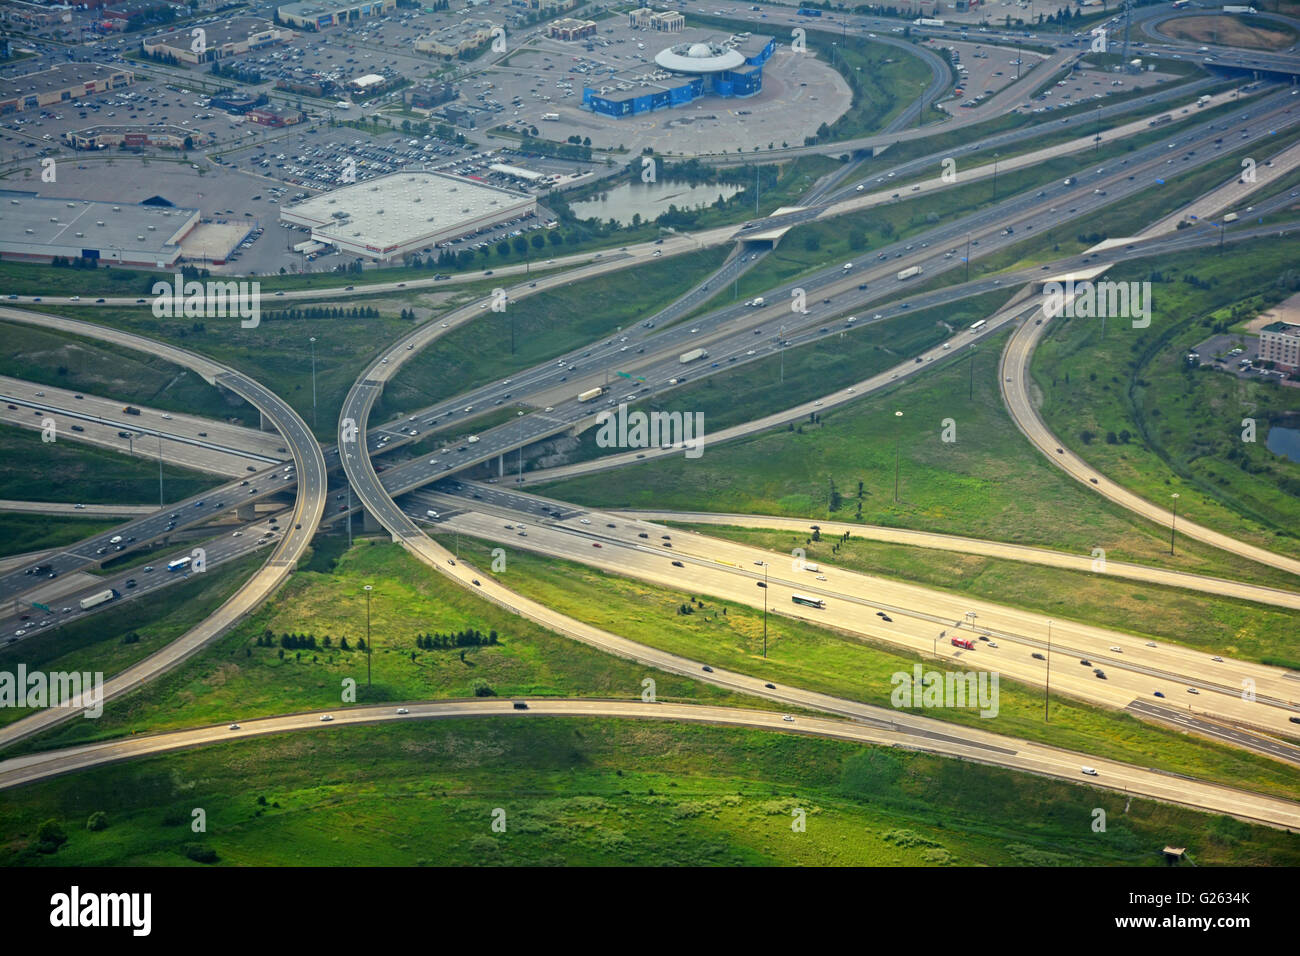 Highway 407 Stock Photos & Highway 407 Stock Images - Alamy